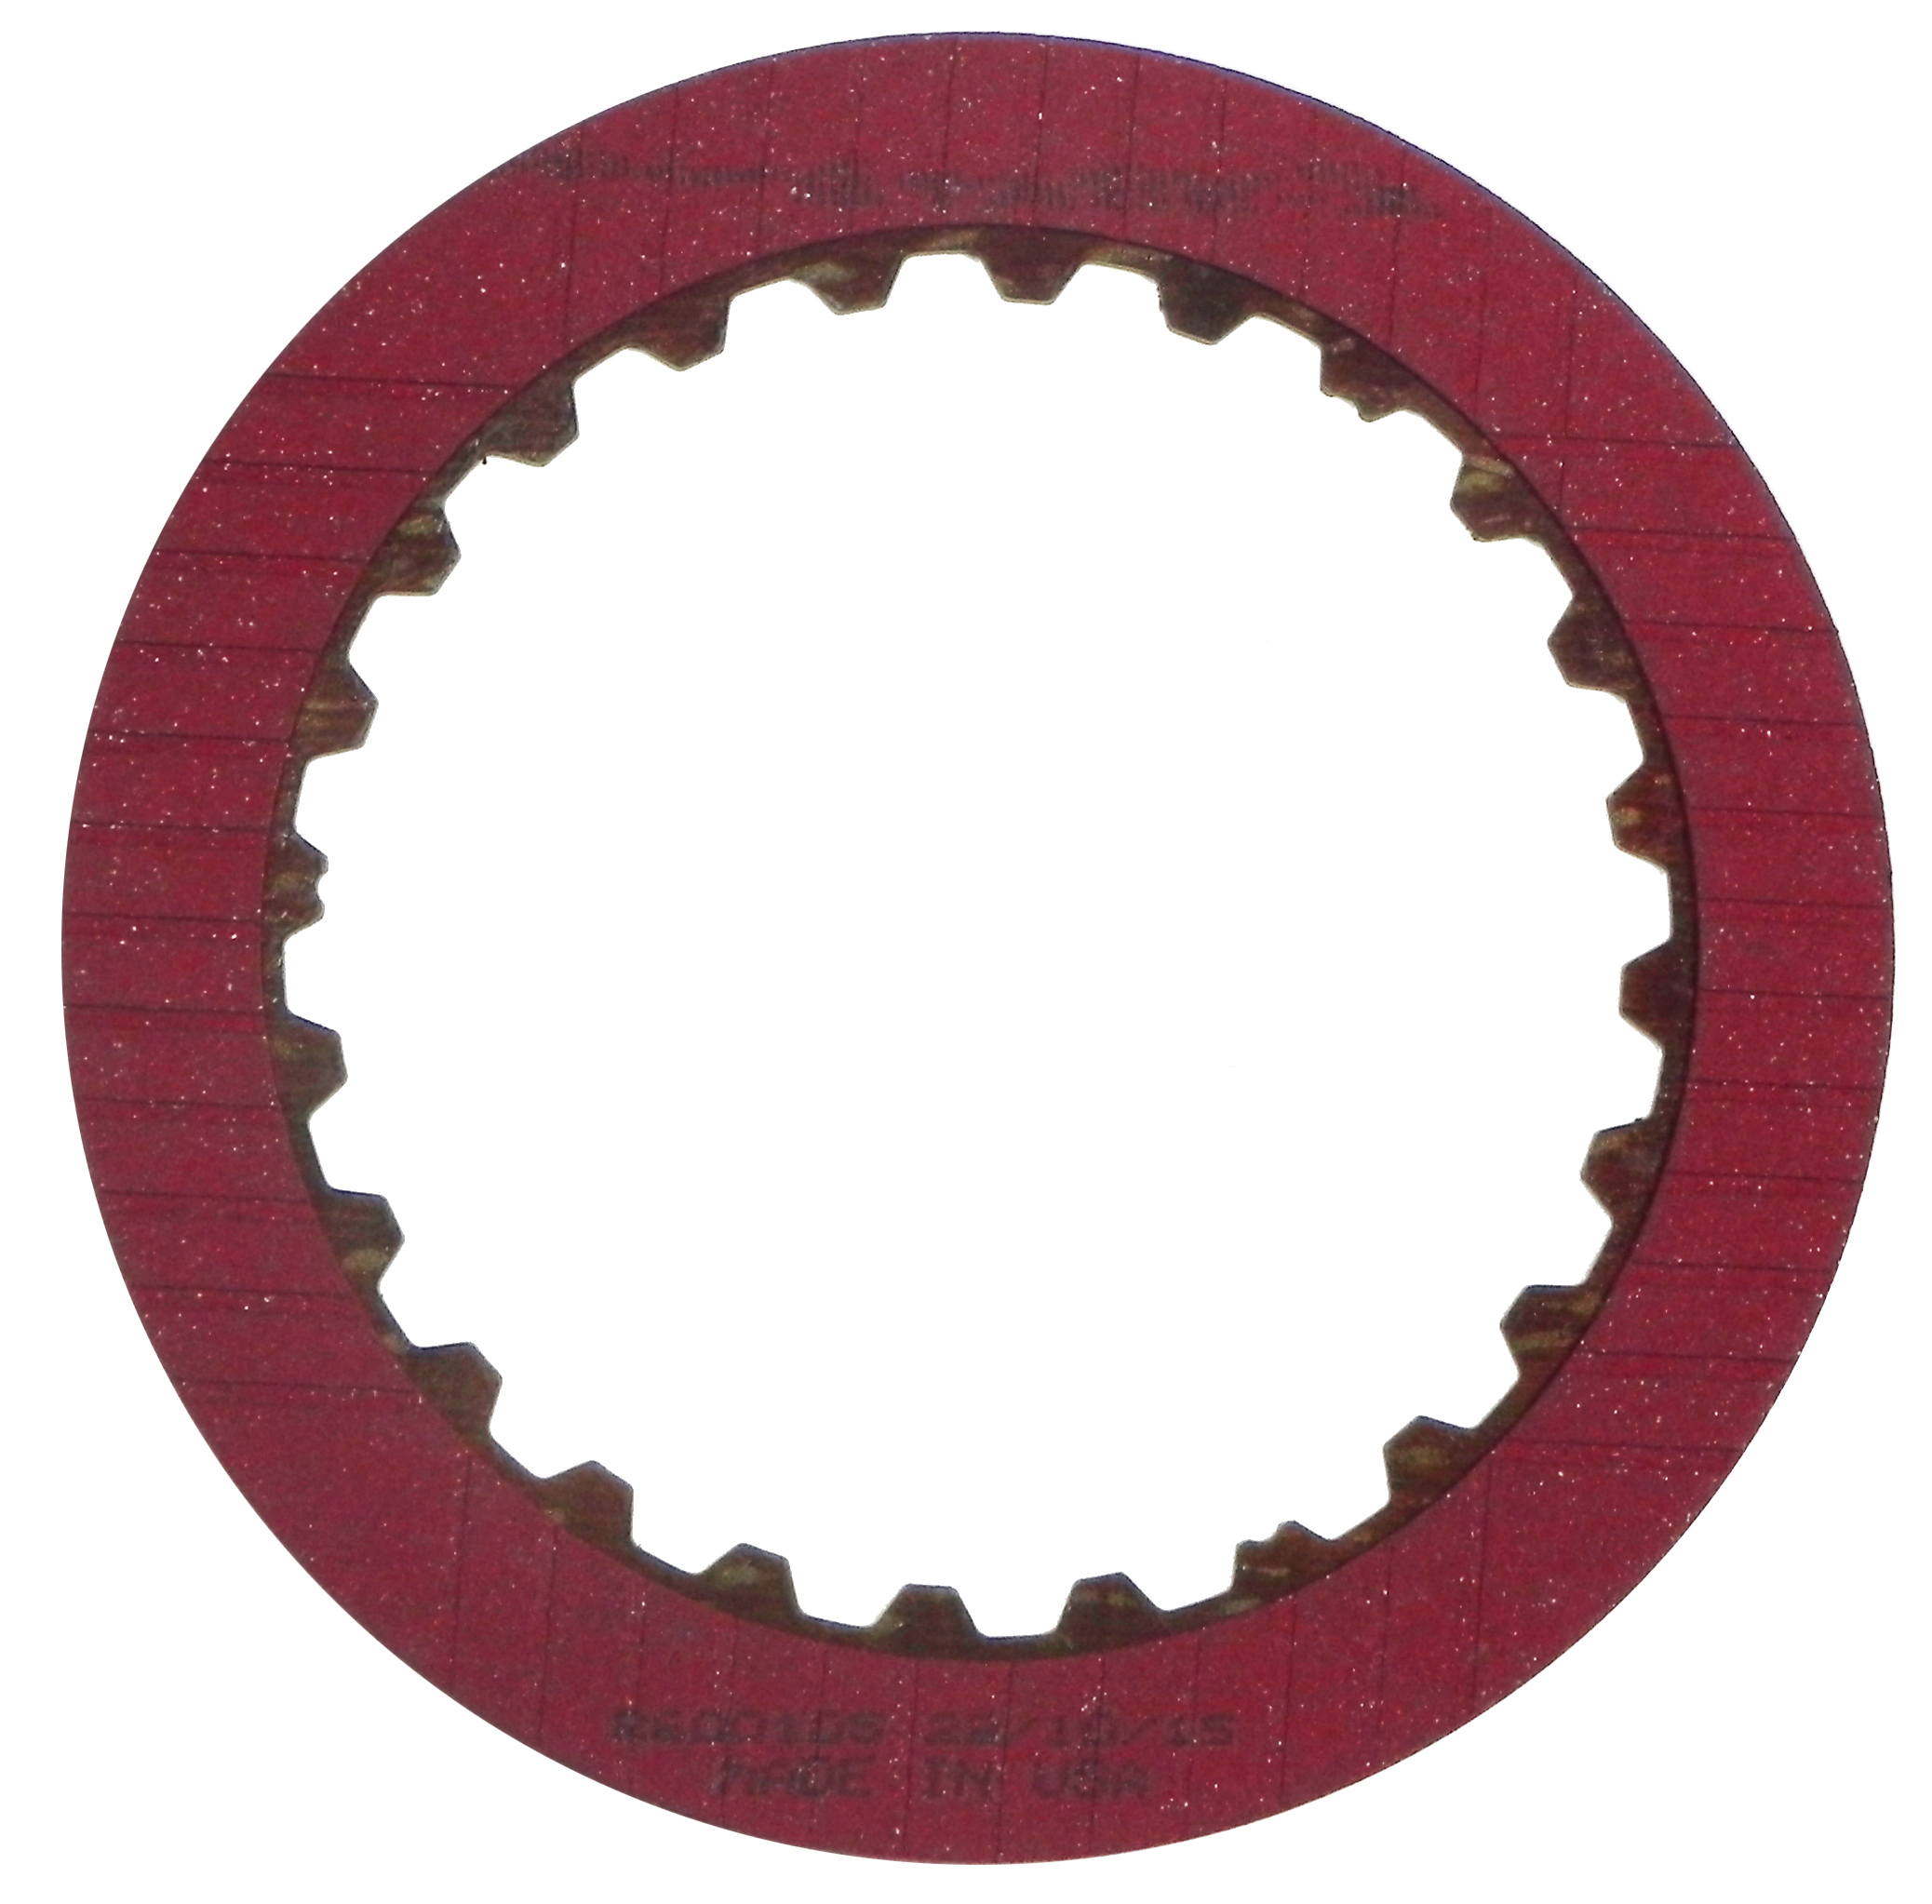 R600105 | 1997-2006 Friction Clutch Plate Stage-1™ K3 Clutch Single Sided, ID Spline Stage-1™